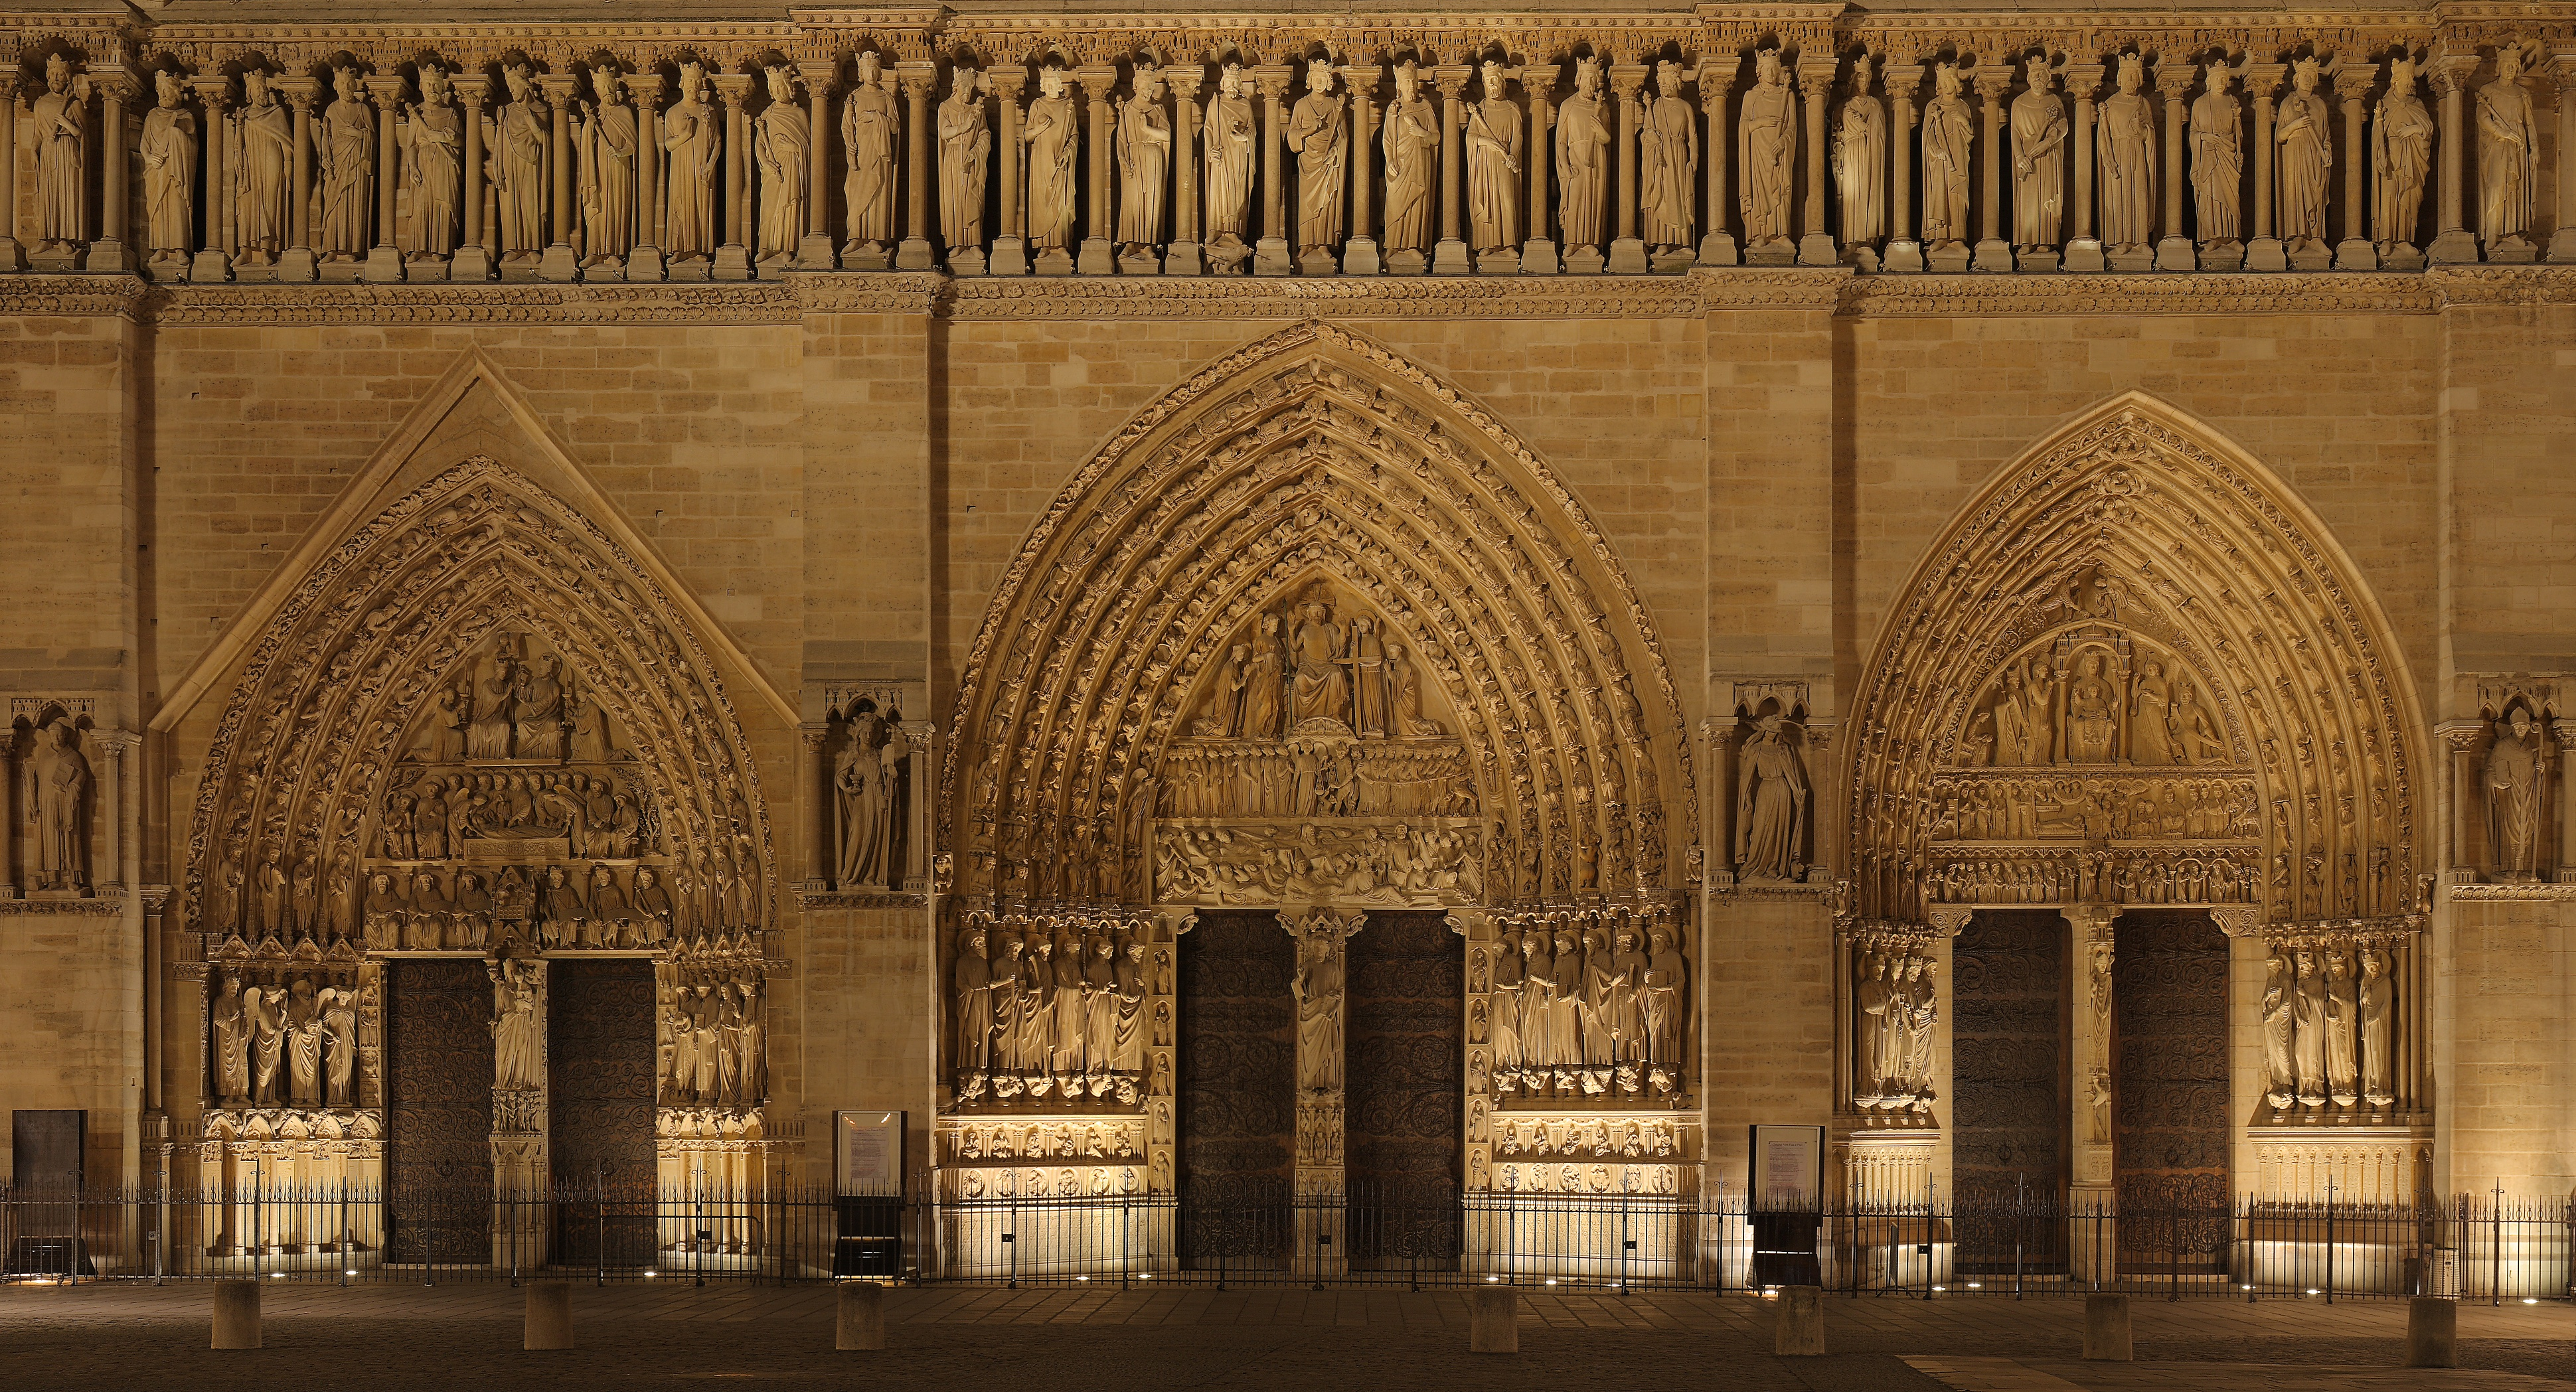 Exceptionnel File:Notre Dame Paris front facade lower.jpg - Wikimedia Commons HM21